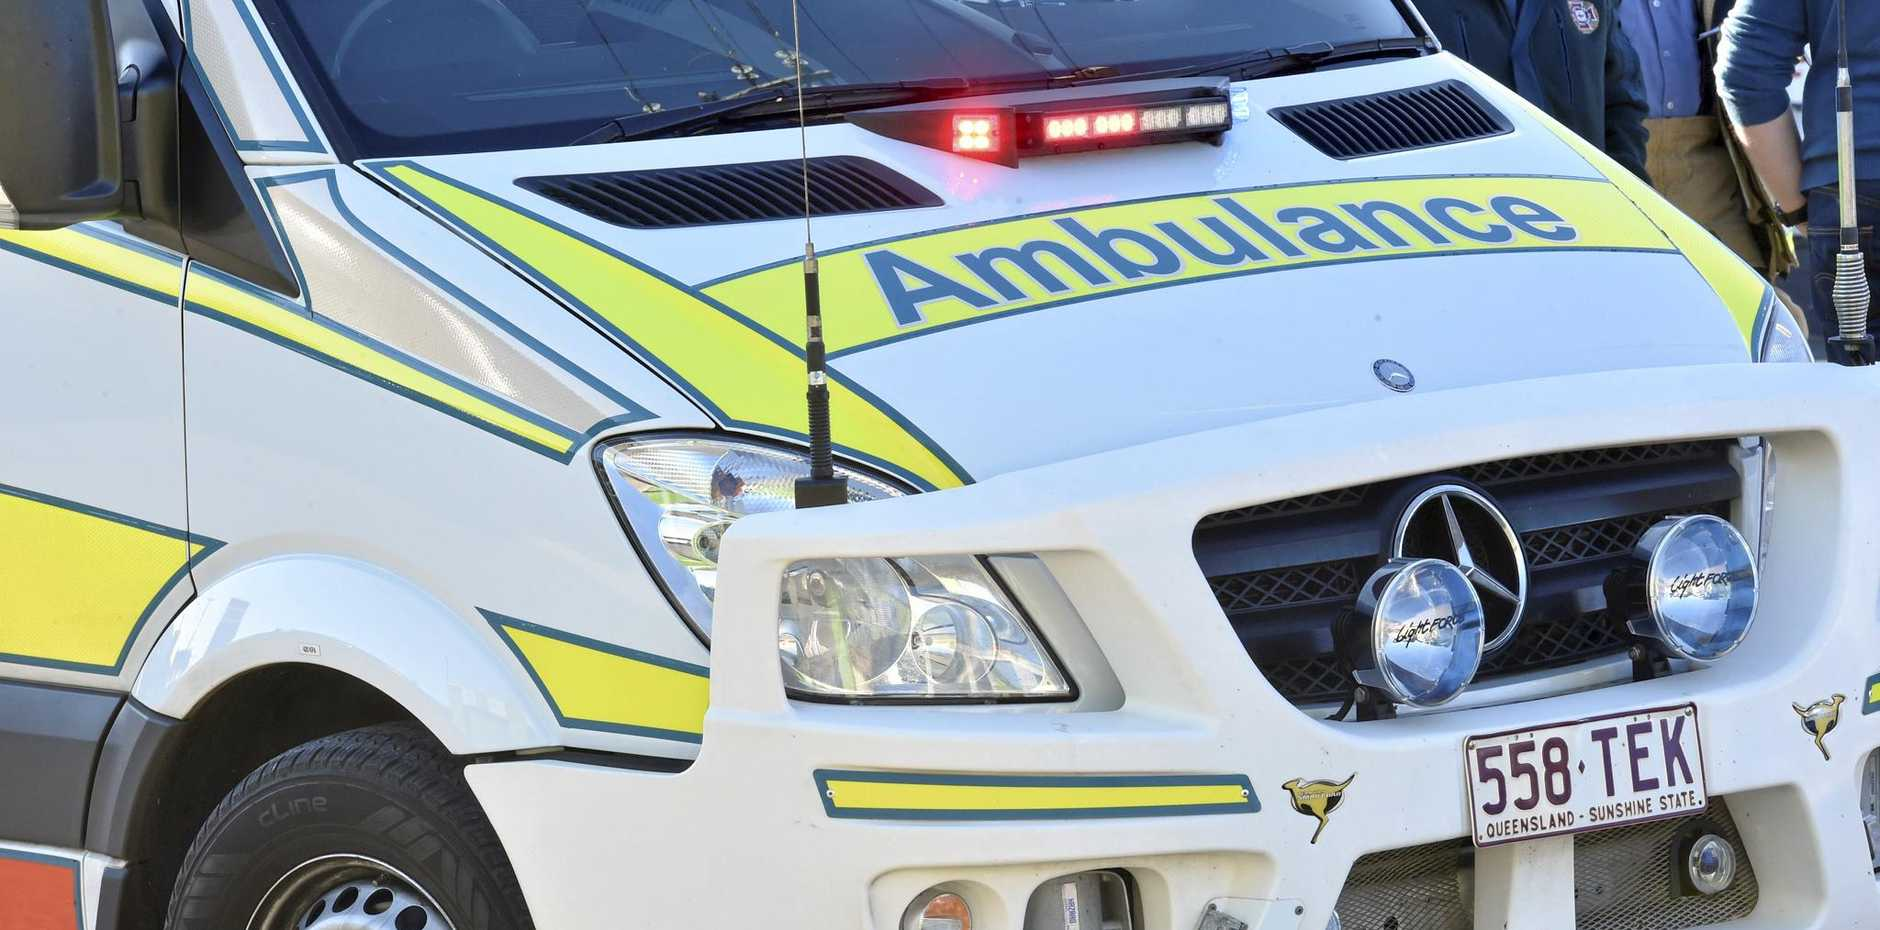 An ambulance was called to Sugar Hair in Rural View and a woman was taken to hospital.